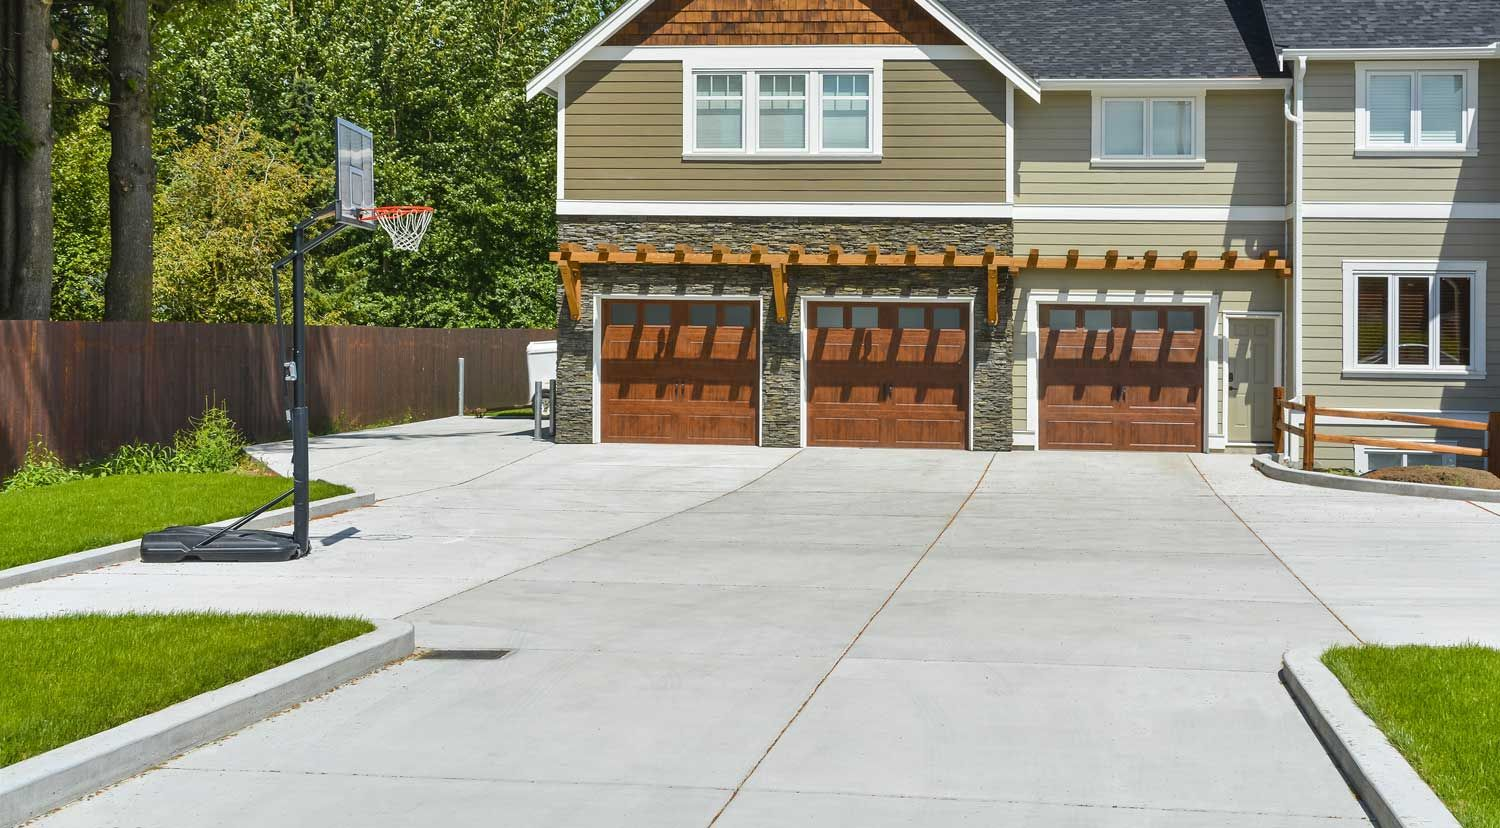 Cost To Install Concrete Driveway 2020 Price Calculator Cost Of Concrete Driveway Driveway Design Concrete Driveways